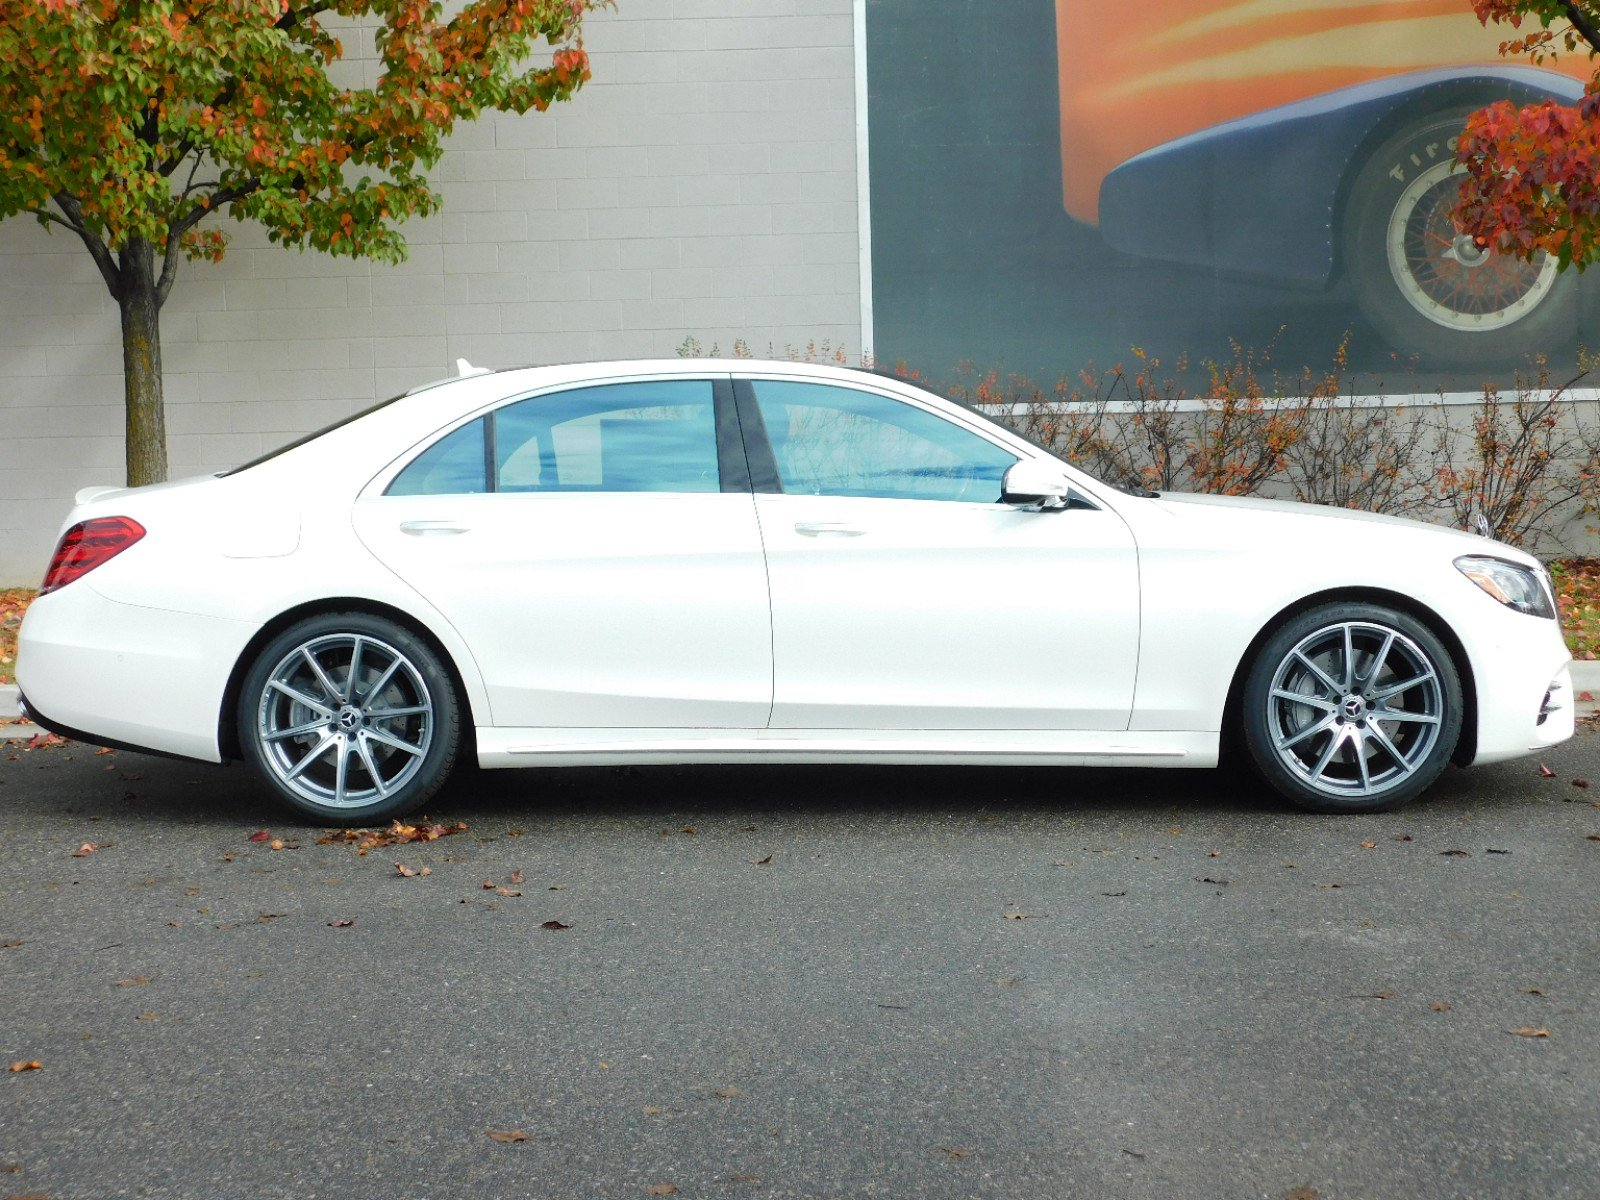 New 2019 Mercedes Benz S Class S 560 4dr Car 1M9096